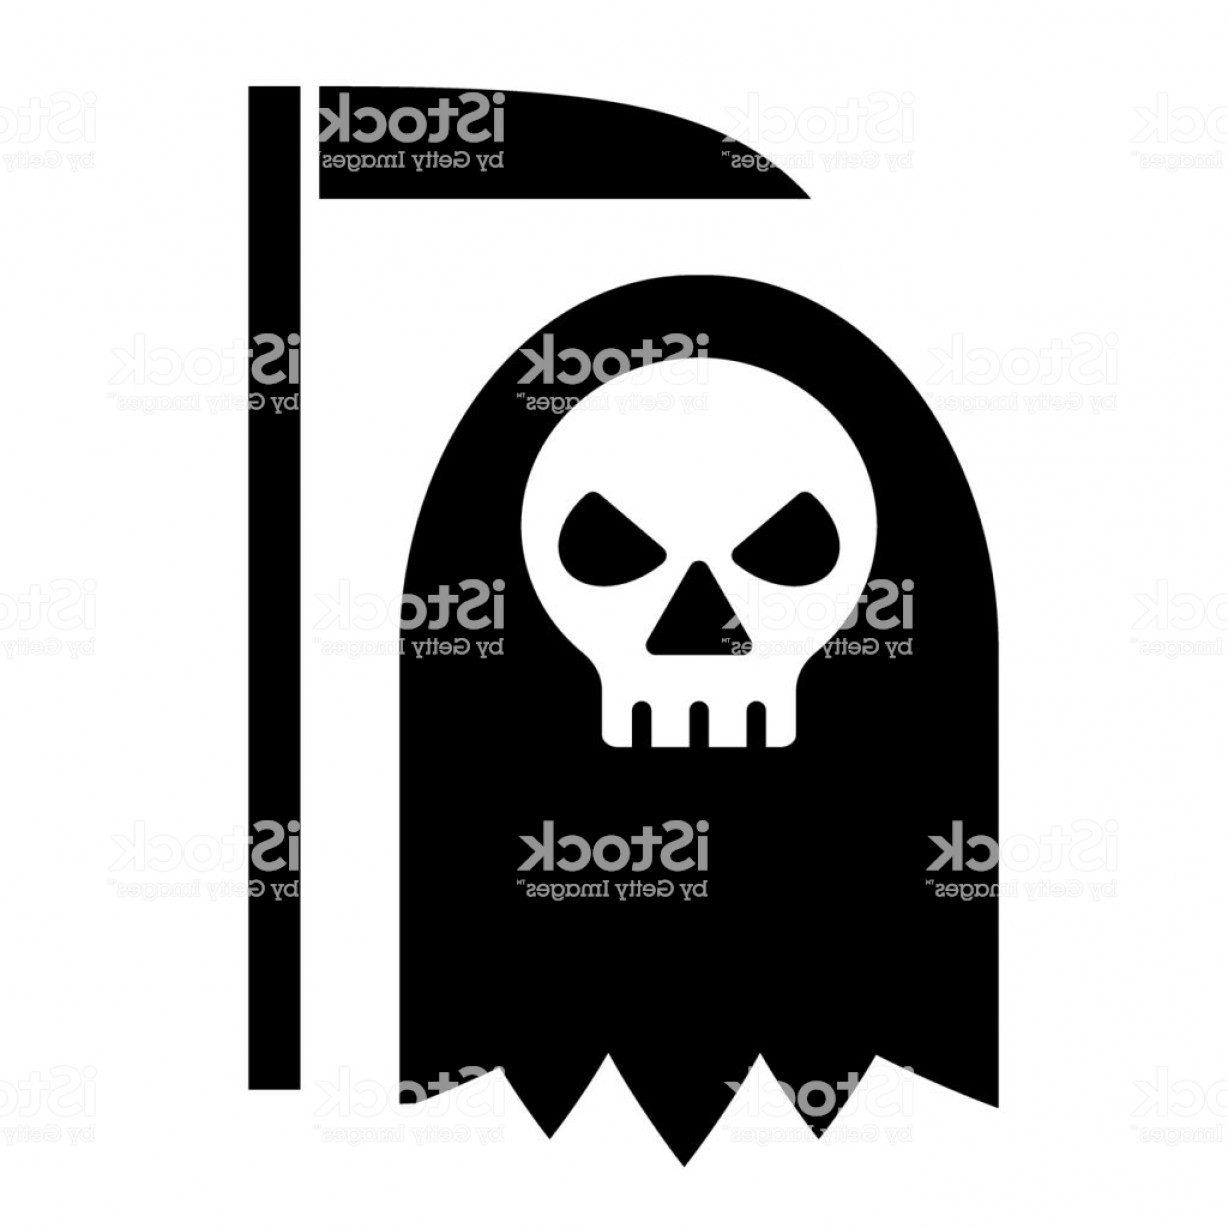 Spawn Vector: Ggrim Reaper Solid Icon Cemetery Vector Illustration Isolated On White Cross Glyph Gm